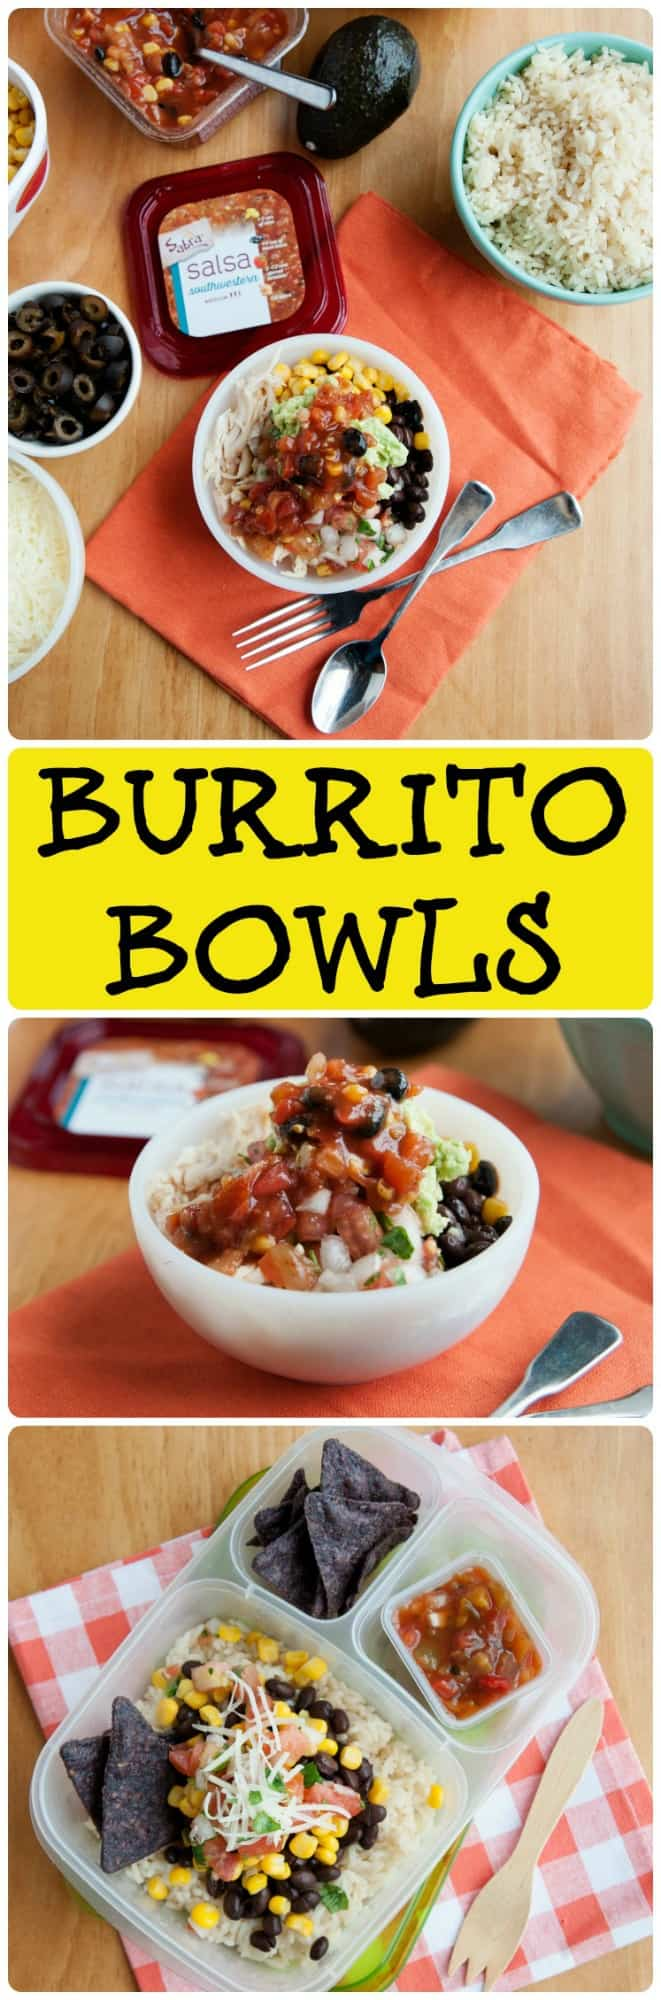 Chipotle Burrito Bowls at Home from LauraFuentes.com